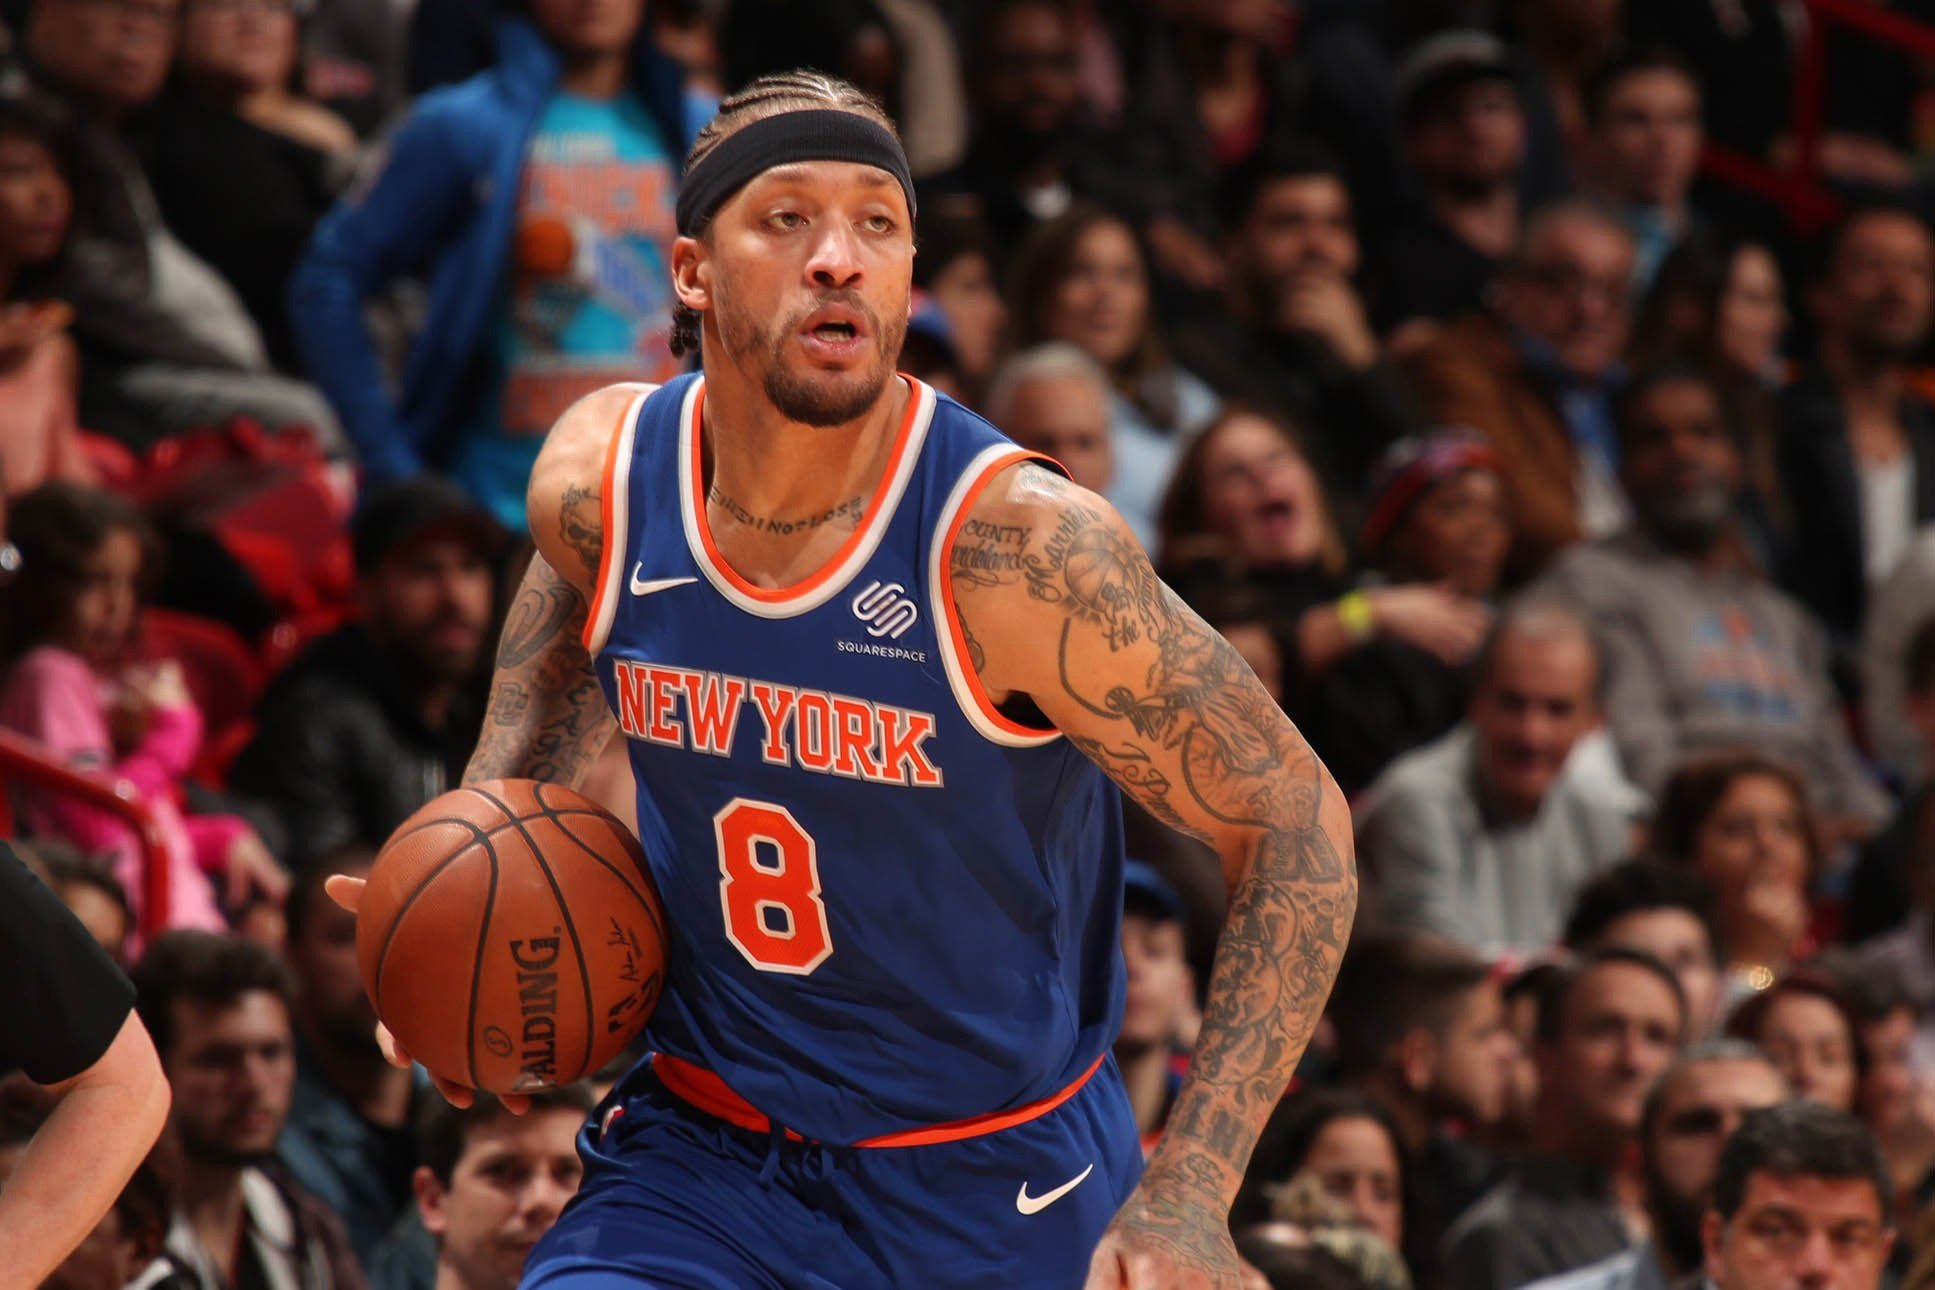 Michael Beasley claims taunting isn't how he got hurt